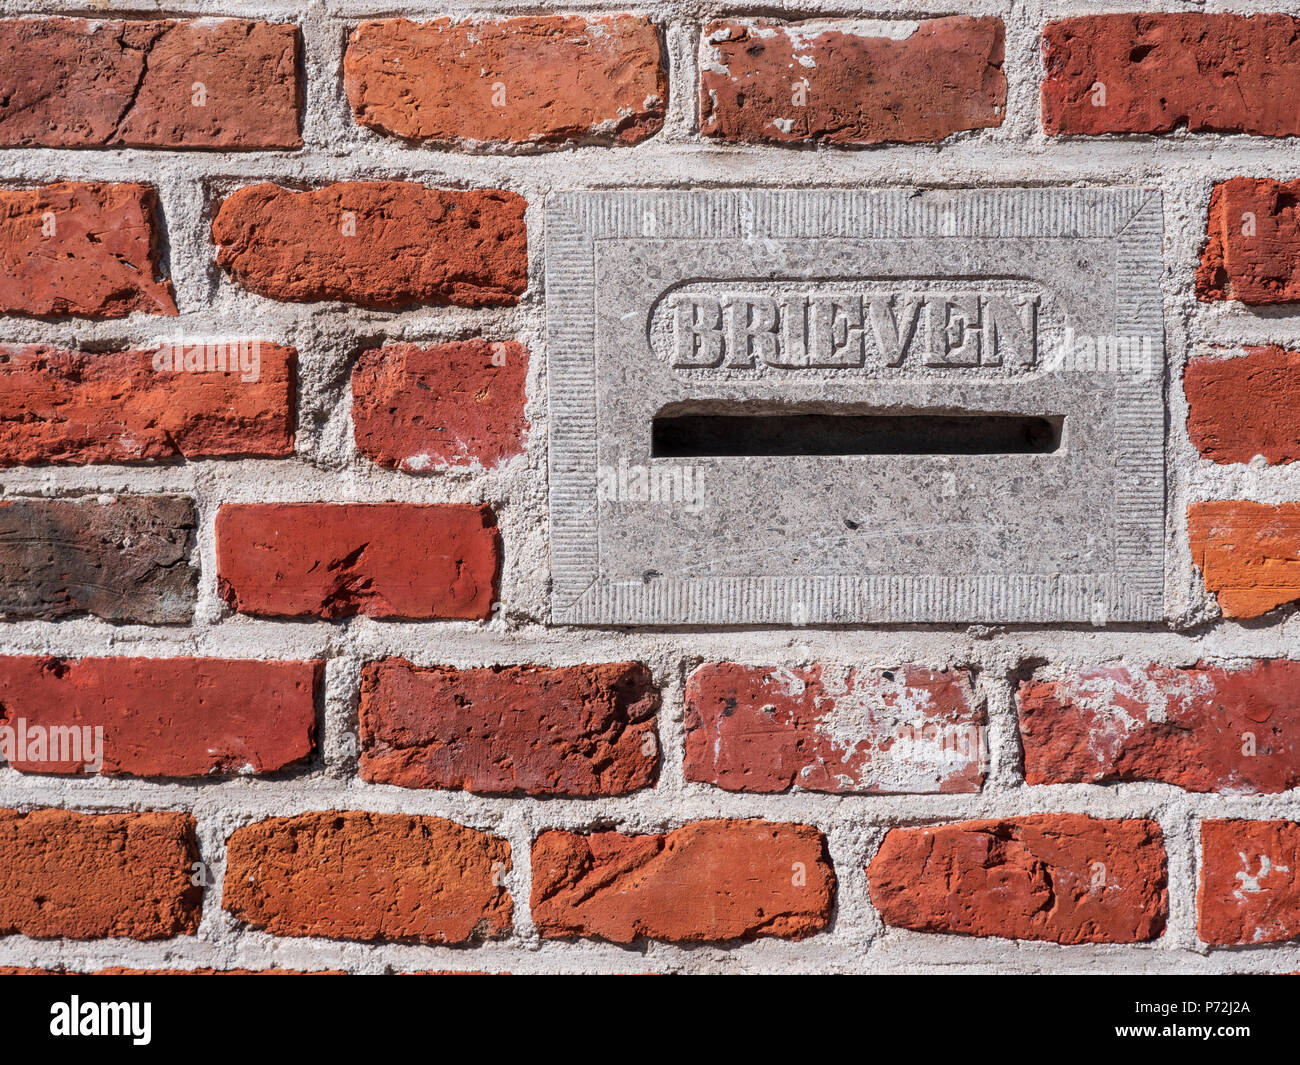 Old stone letterbox in brick wall, with the Dutch text 'letters'. Photographed in the city of Groningen. - Stock Image